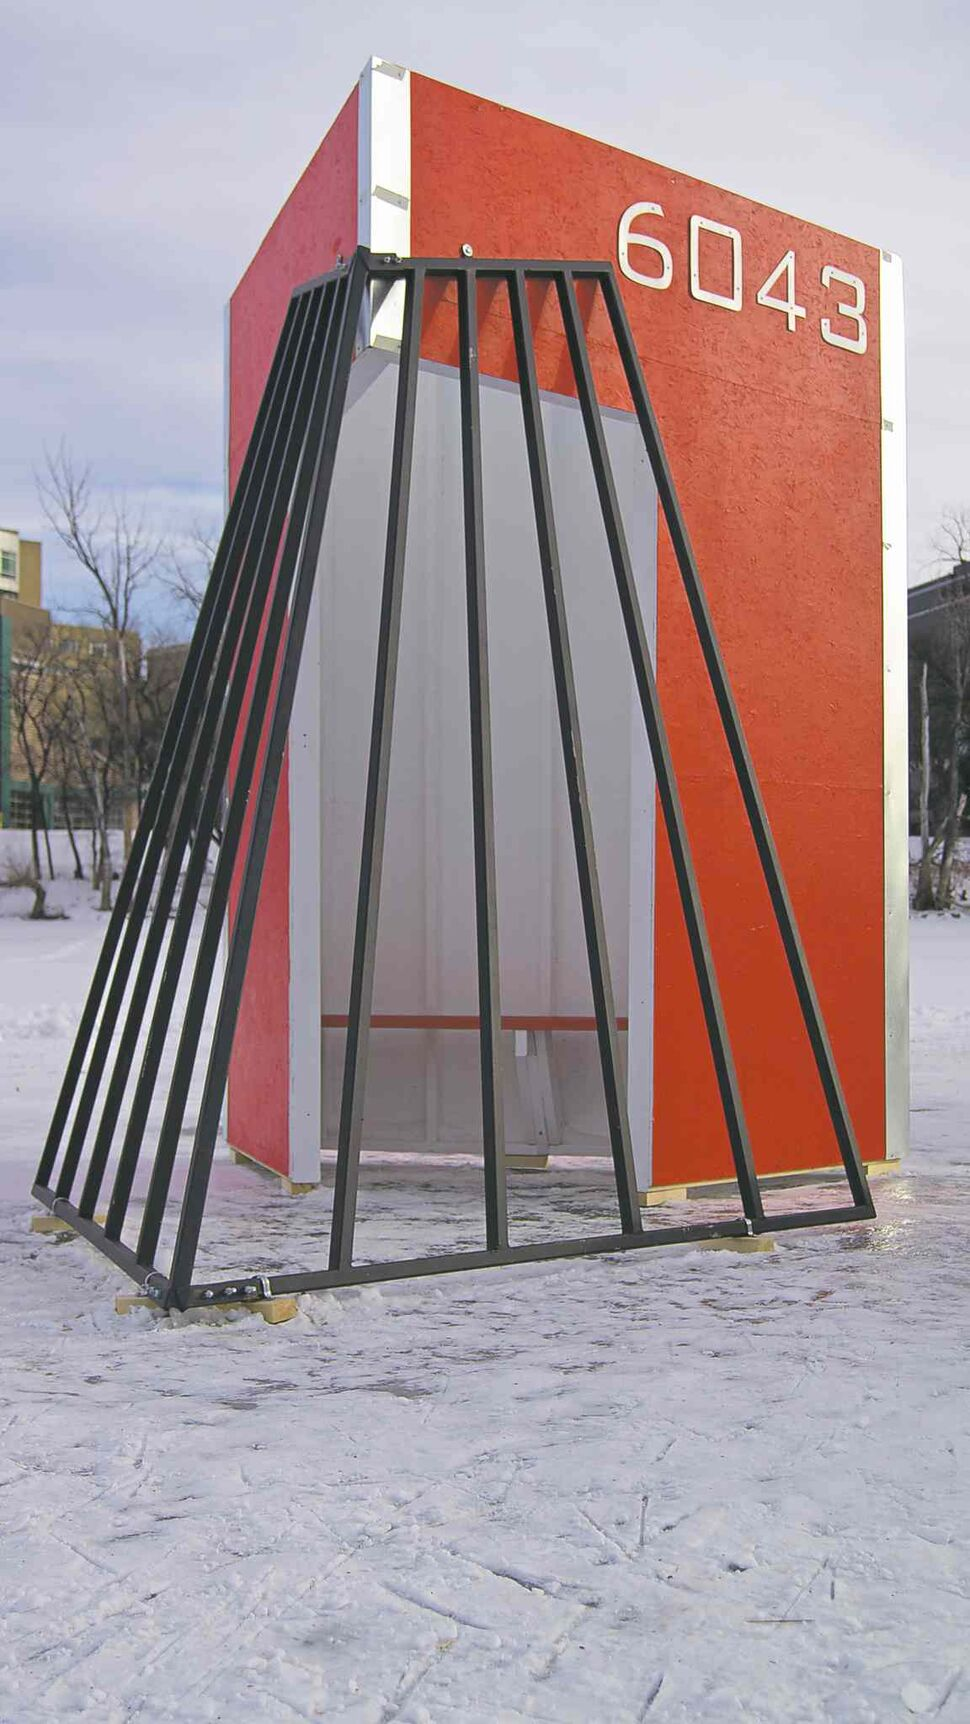 DANIELLE DA SILVA / CANSTAR FILES Warming hut 6043, designed and constructed by students at Kelvin High School.